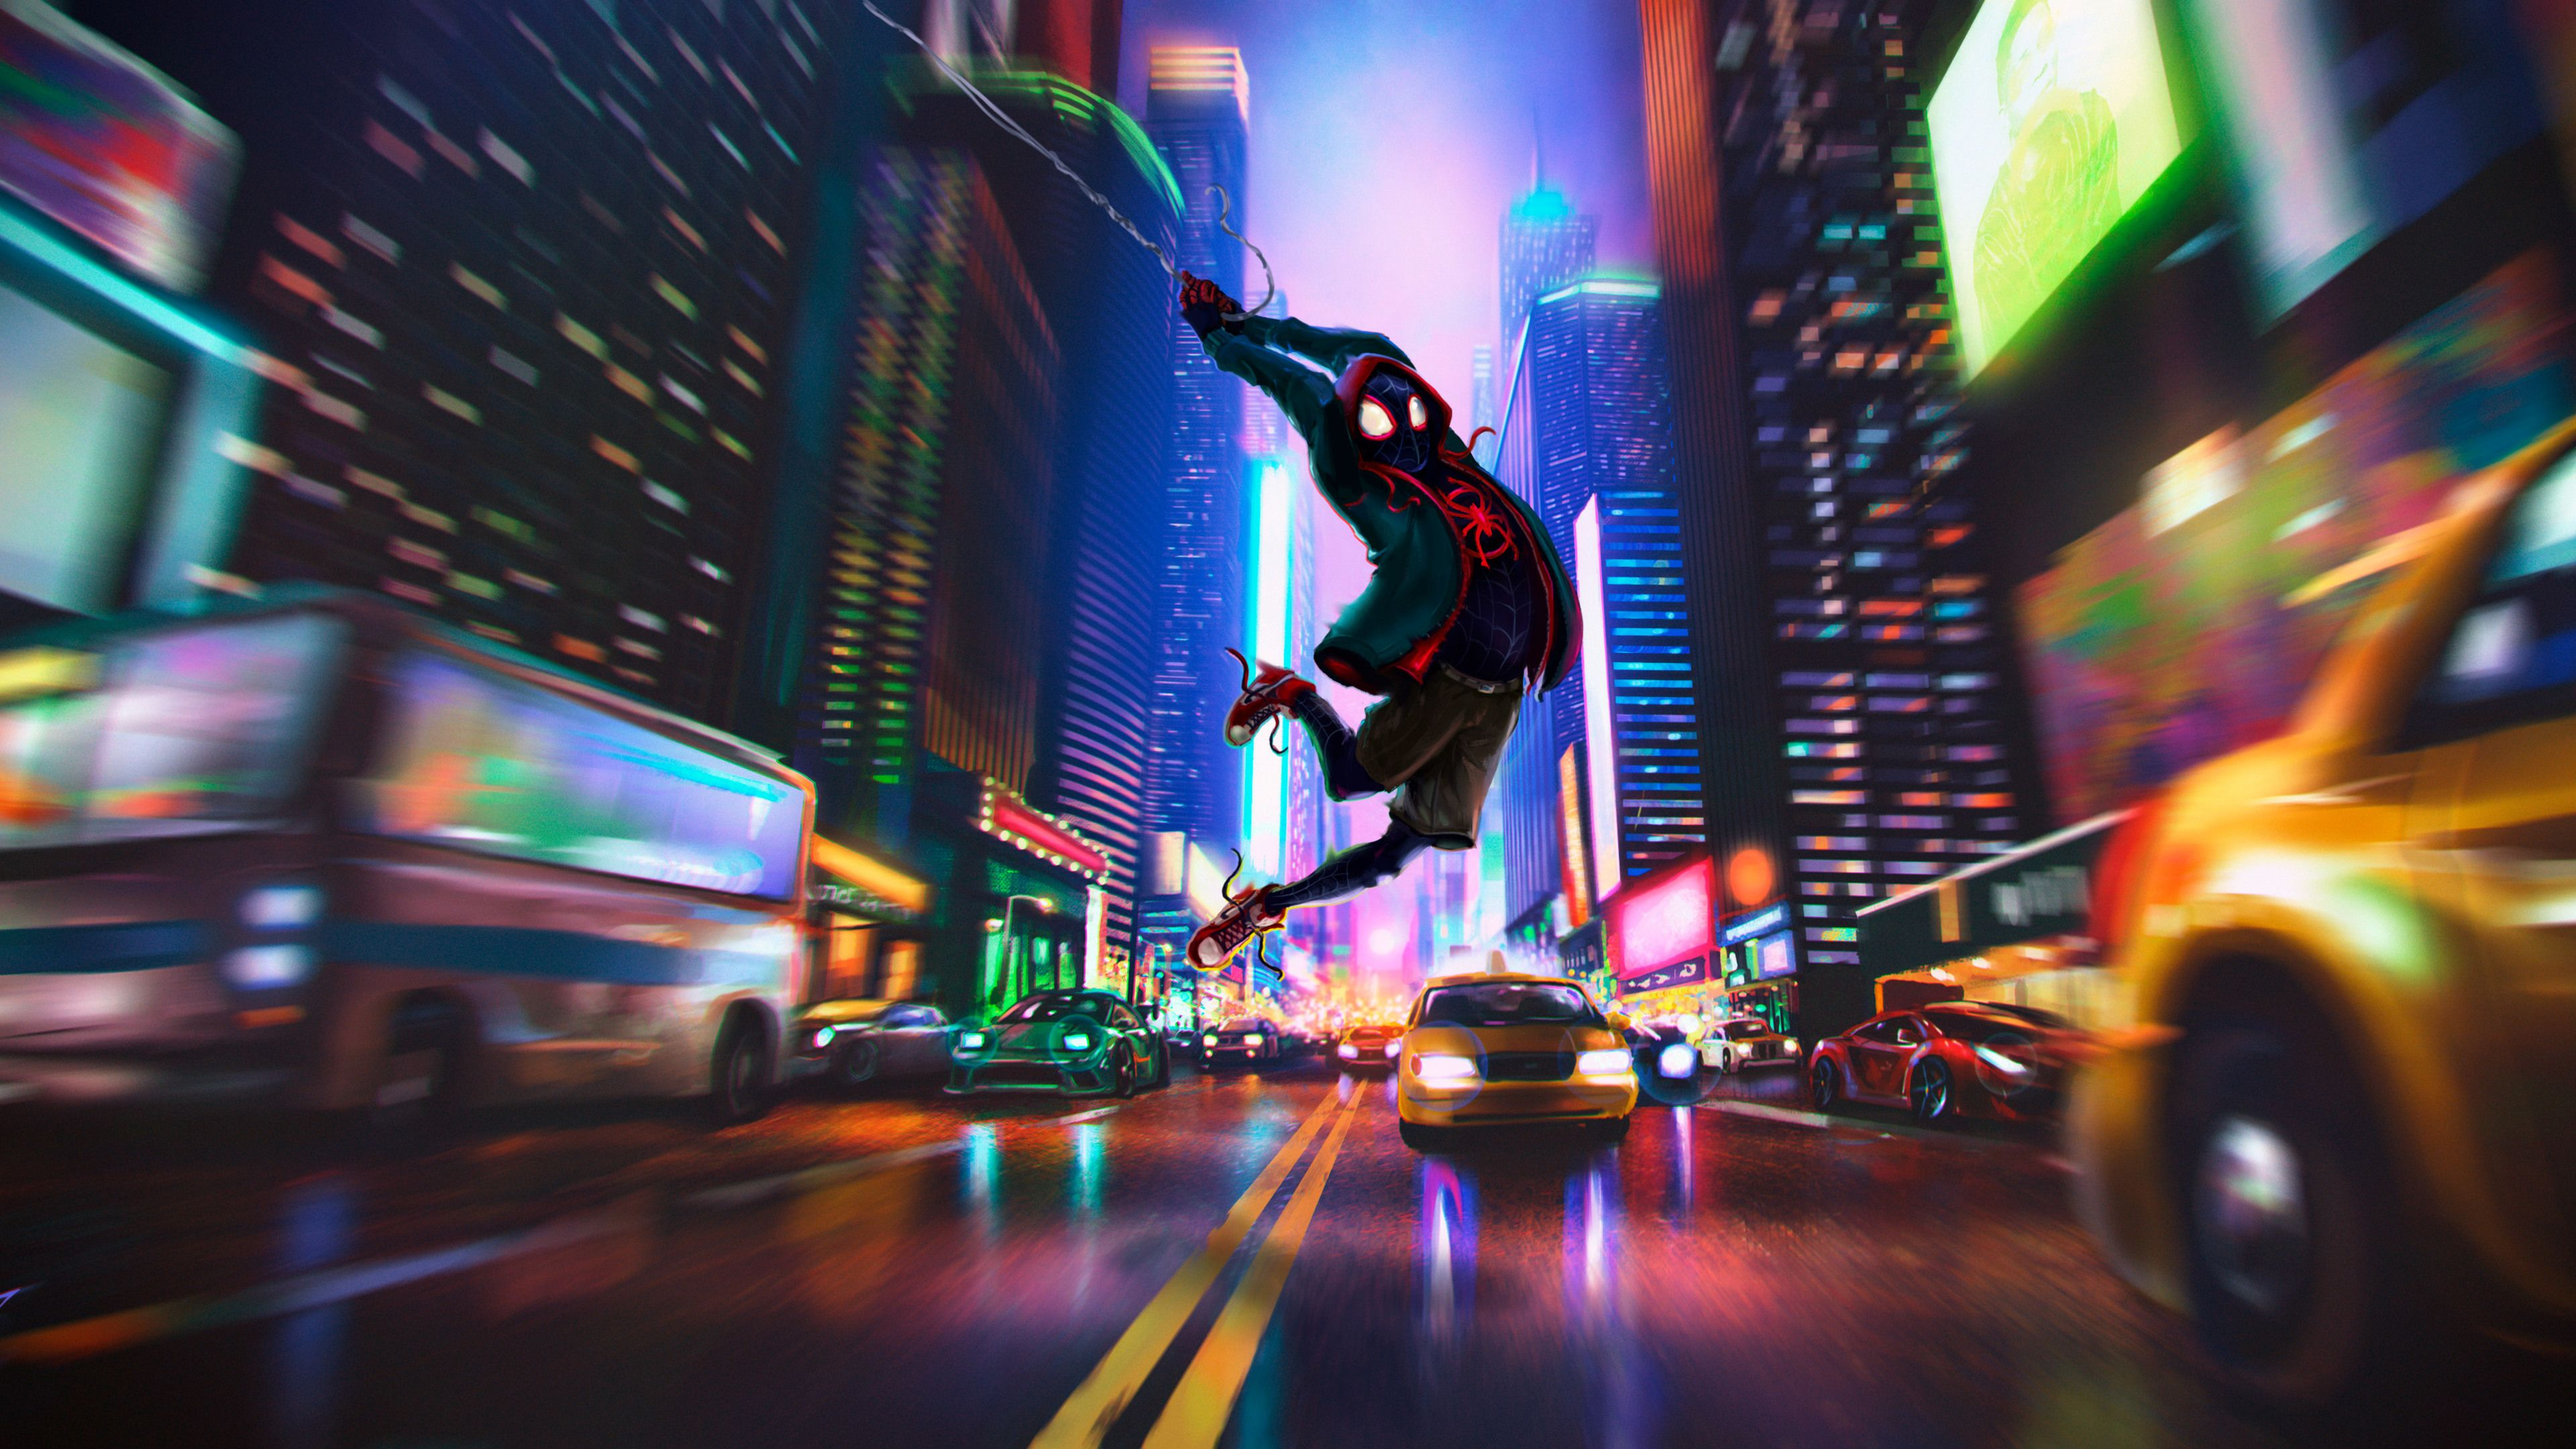 Spider Man In Spider Verse 4k Superheroes Wallpapers Spiderman Wallpapers Spiderman Into The Spider Verse Wallpap Verse Artwork Spider Verse Marvel Wallpaper